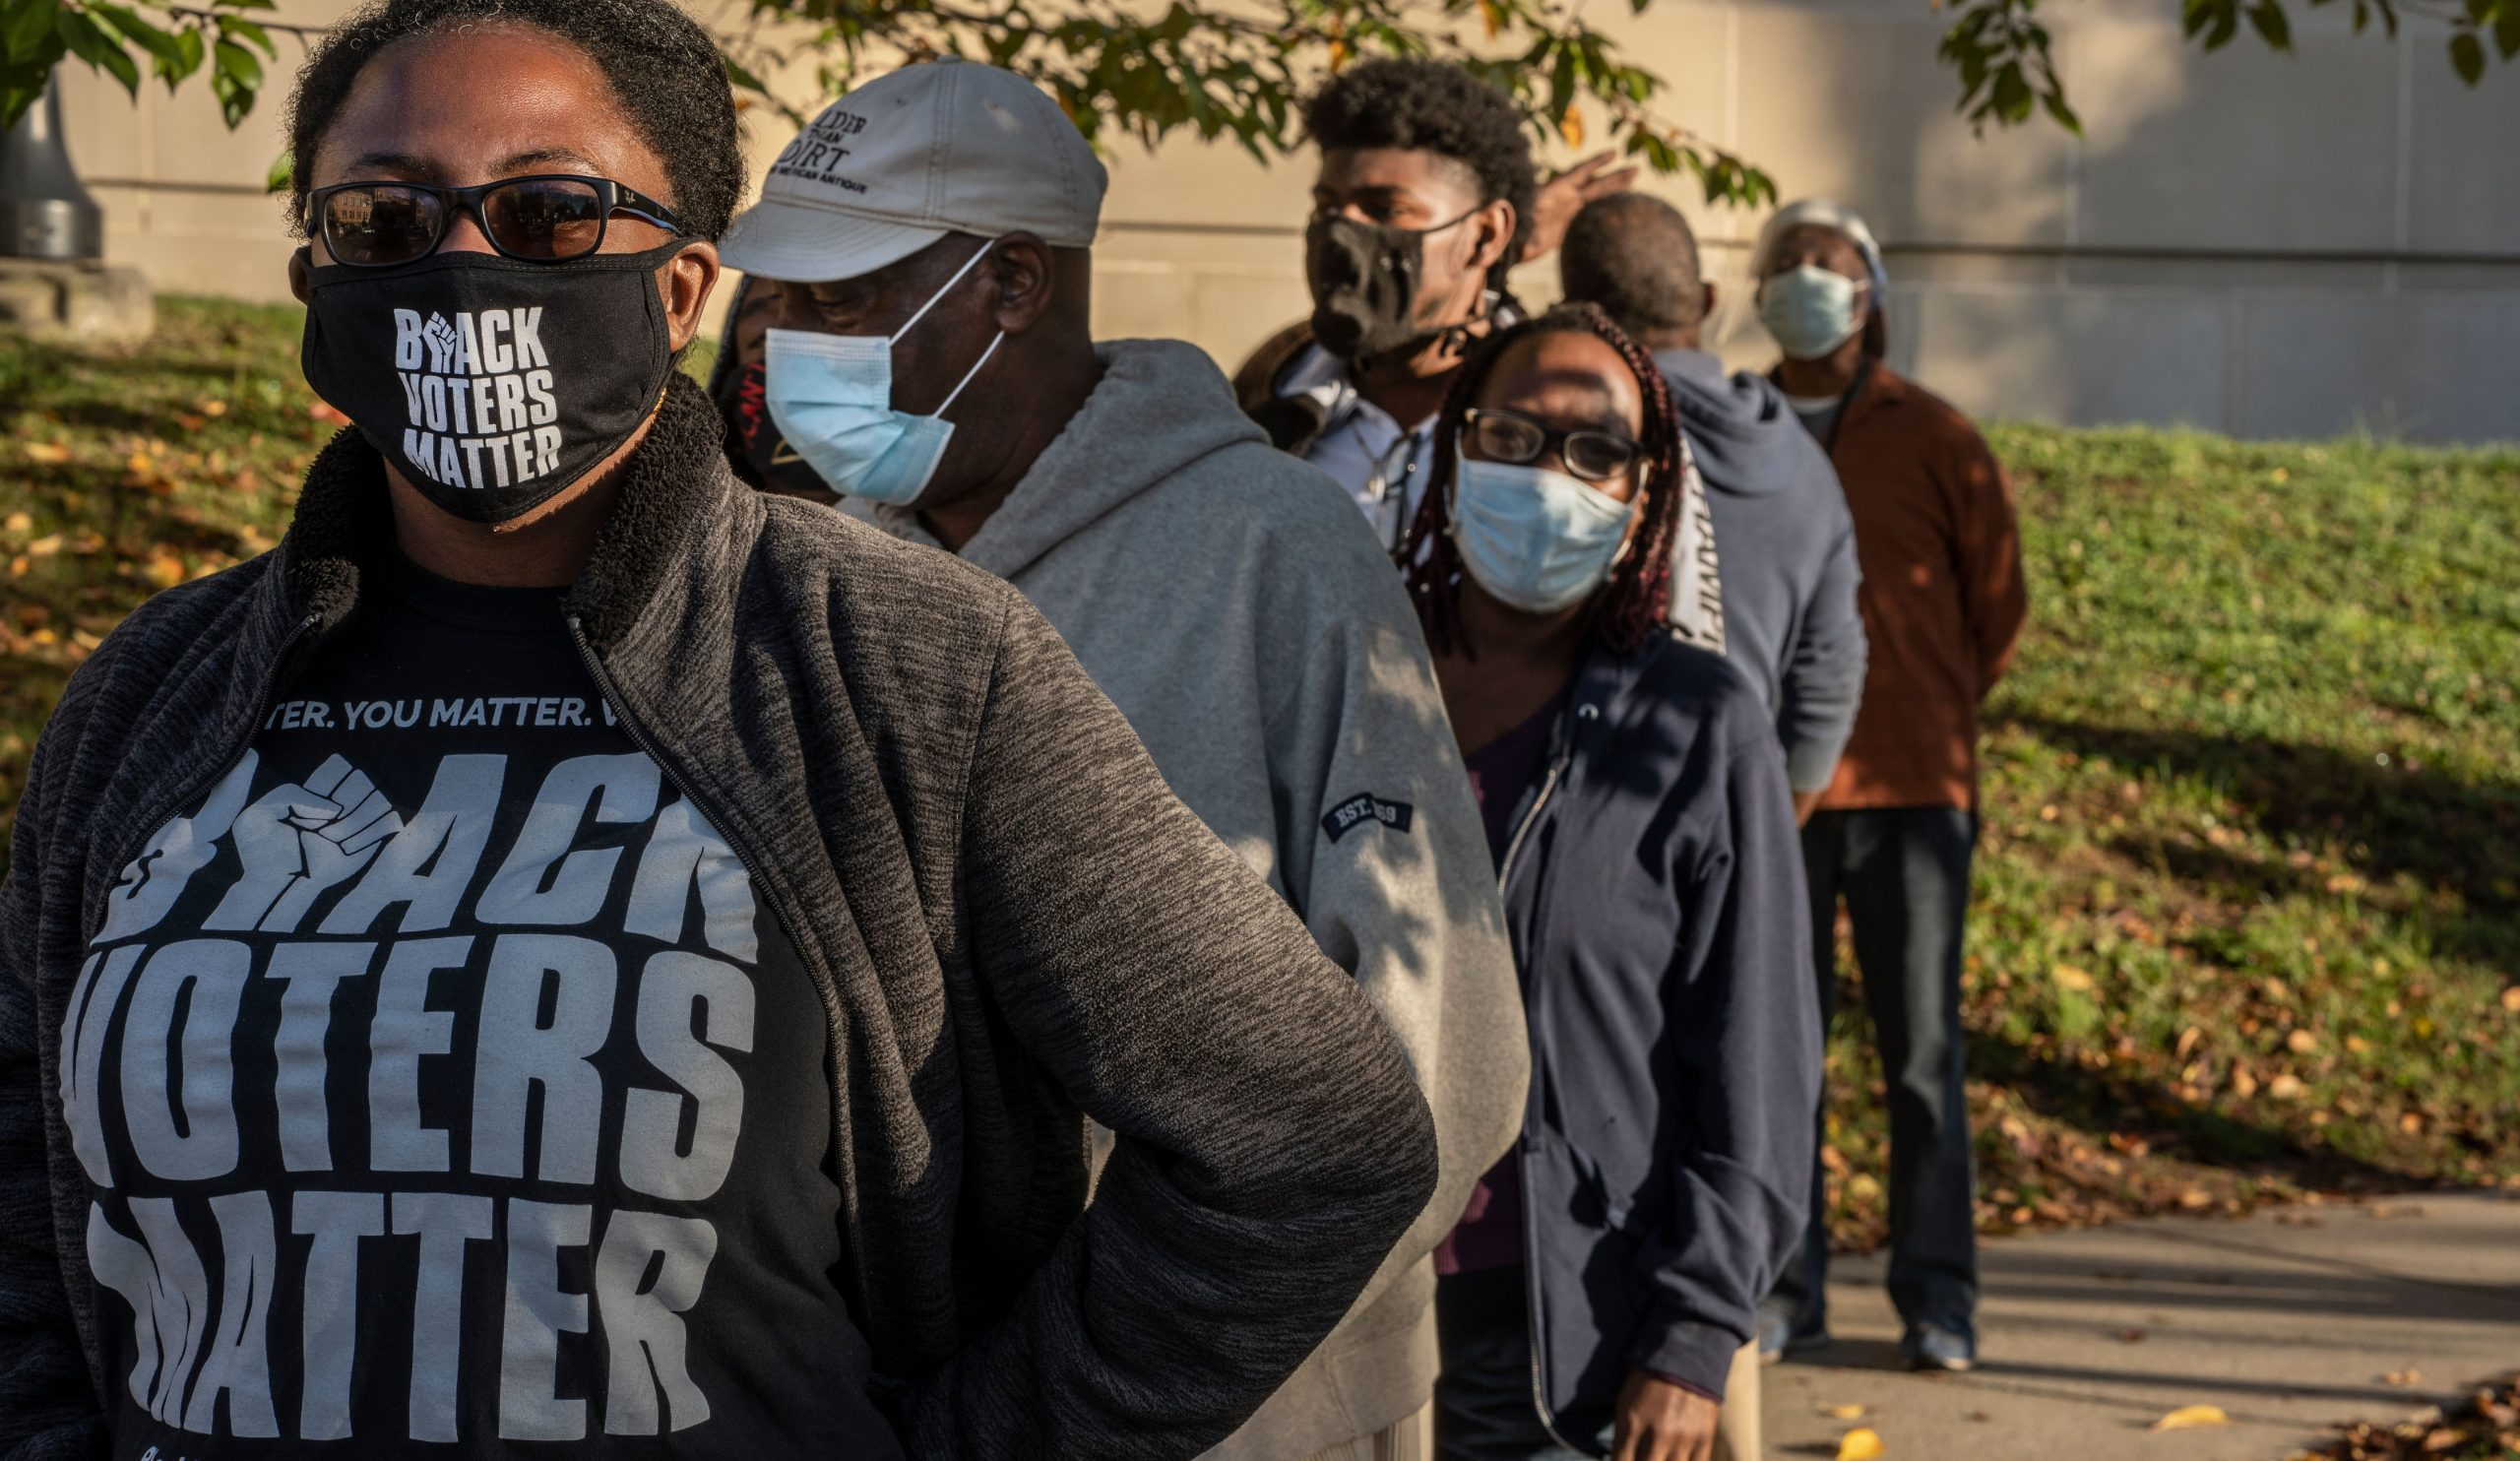 Early voter Lanna Williams, wearing a Black Lives Matter shirt, waits in line to vote with others at the Howard School in Nashville. Apparel with slogans not identified with a particular candidate or political party are permitted while voting. (Photo: John Partipilo)